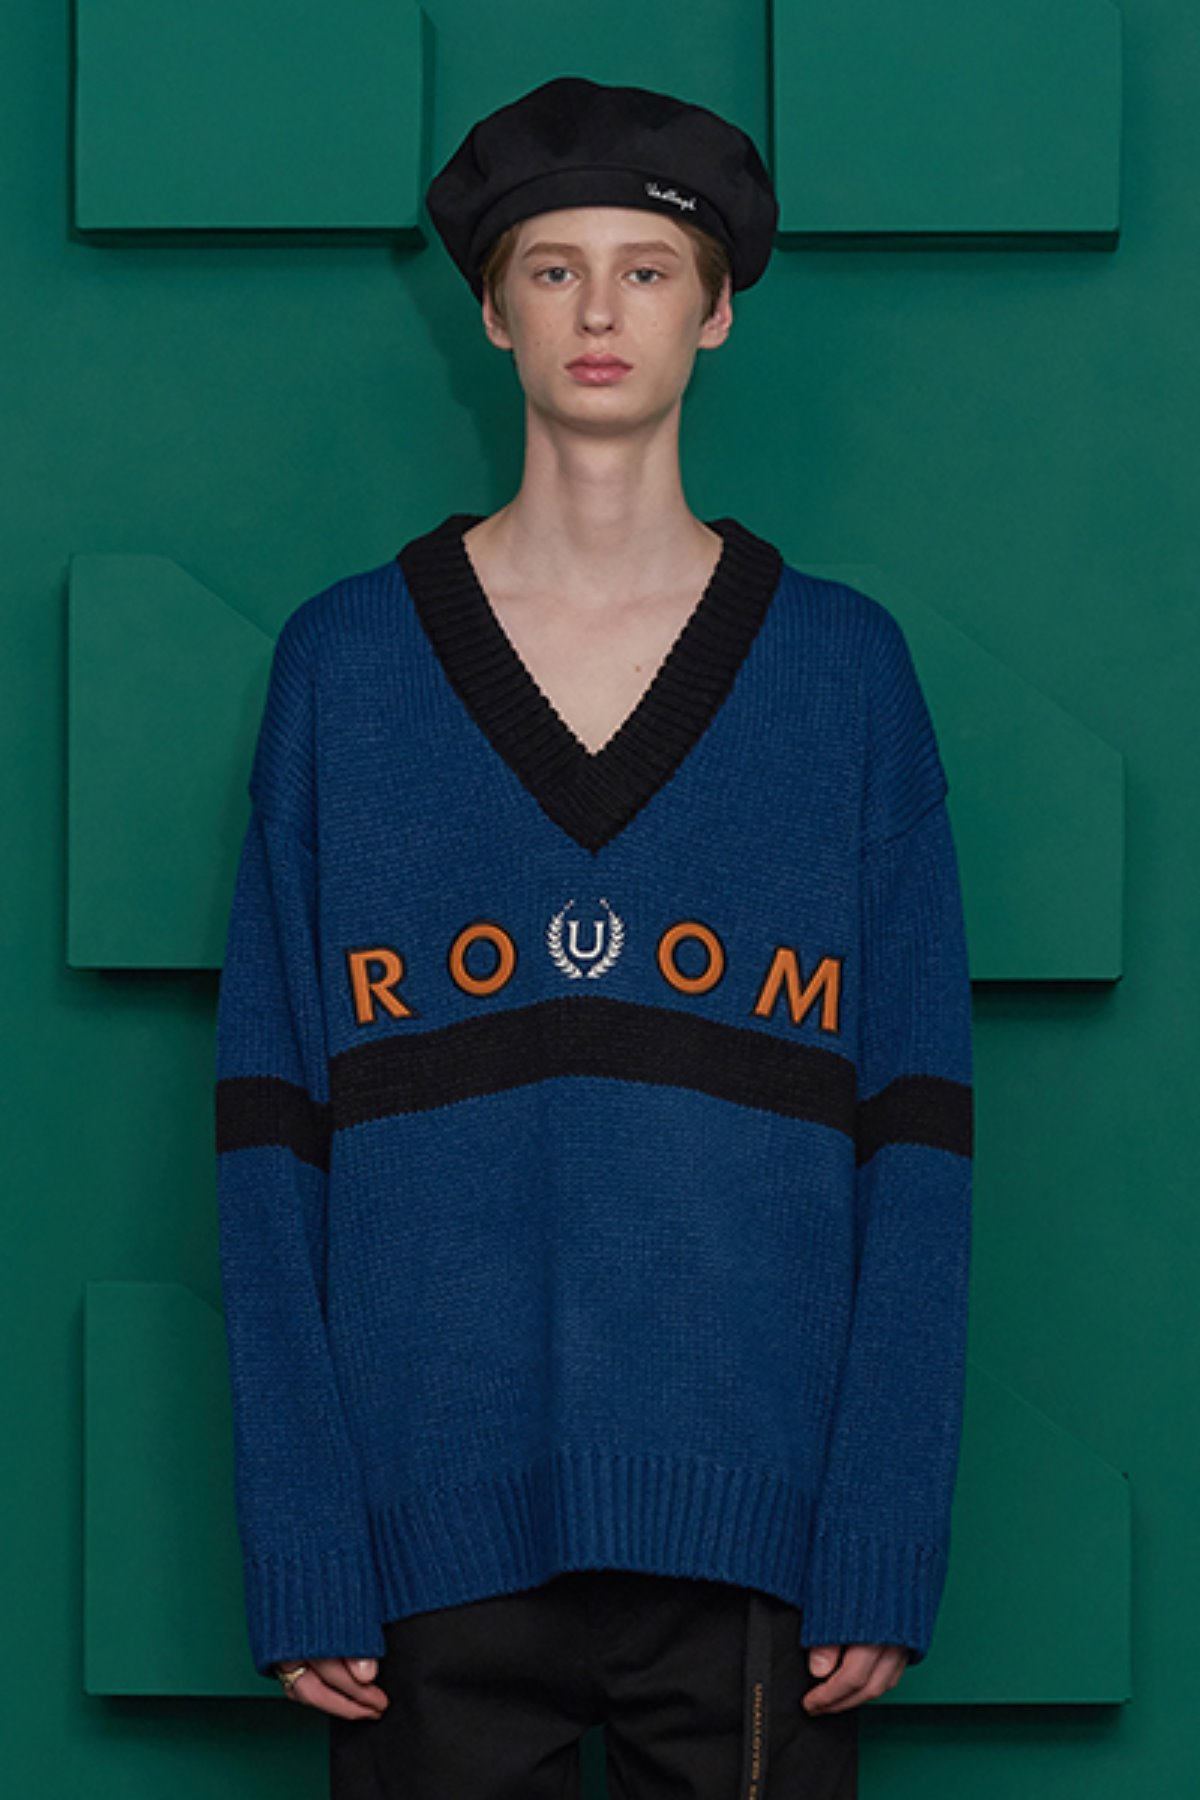 ROOM LOGO V NECK KNIT / BLUE